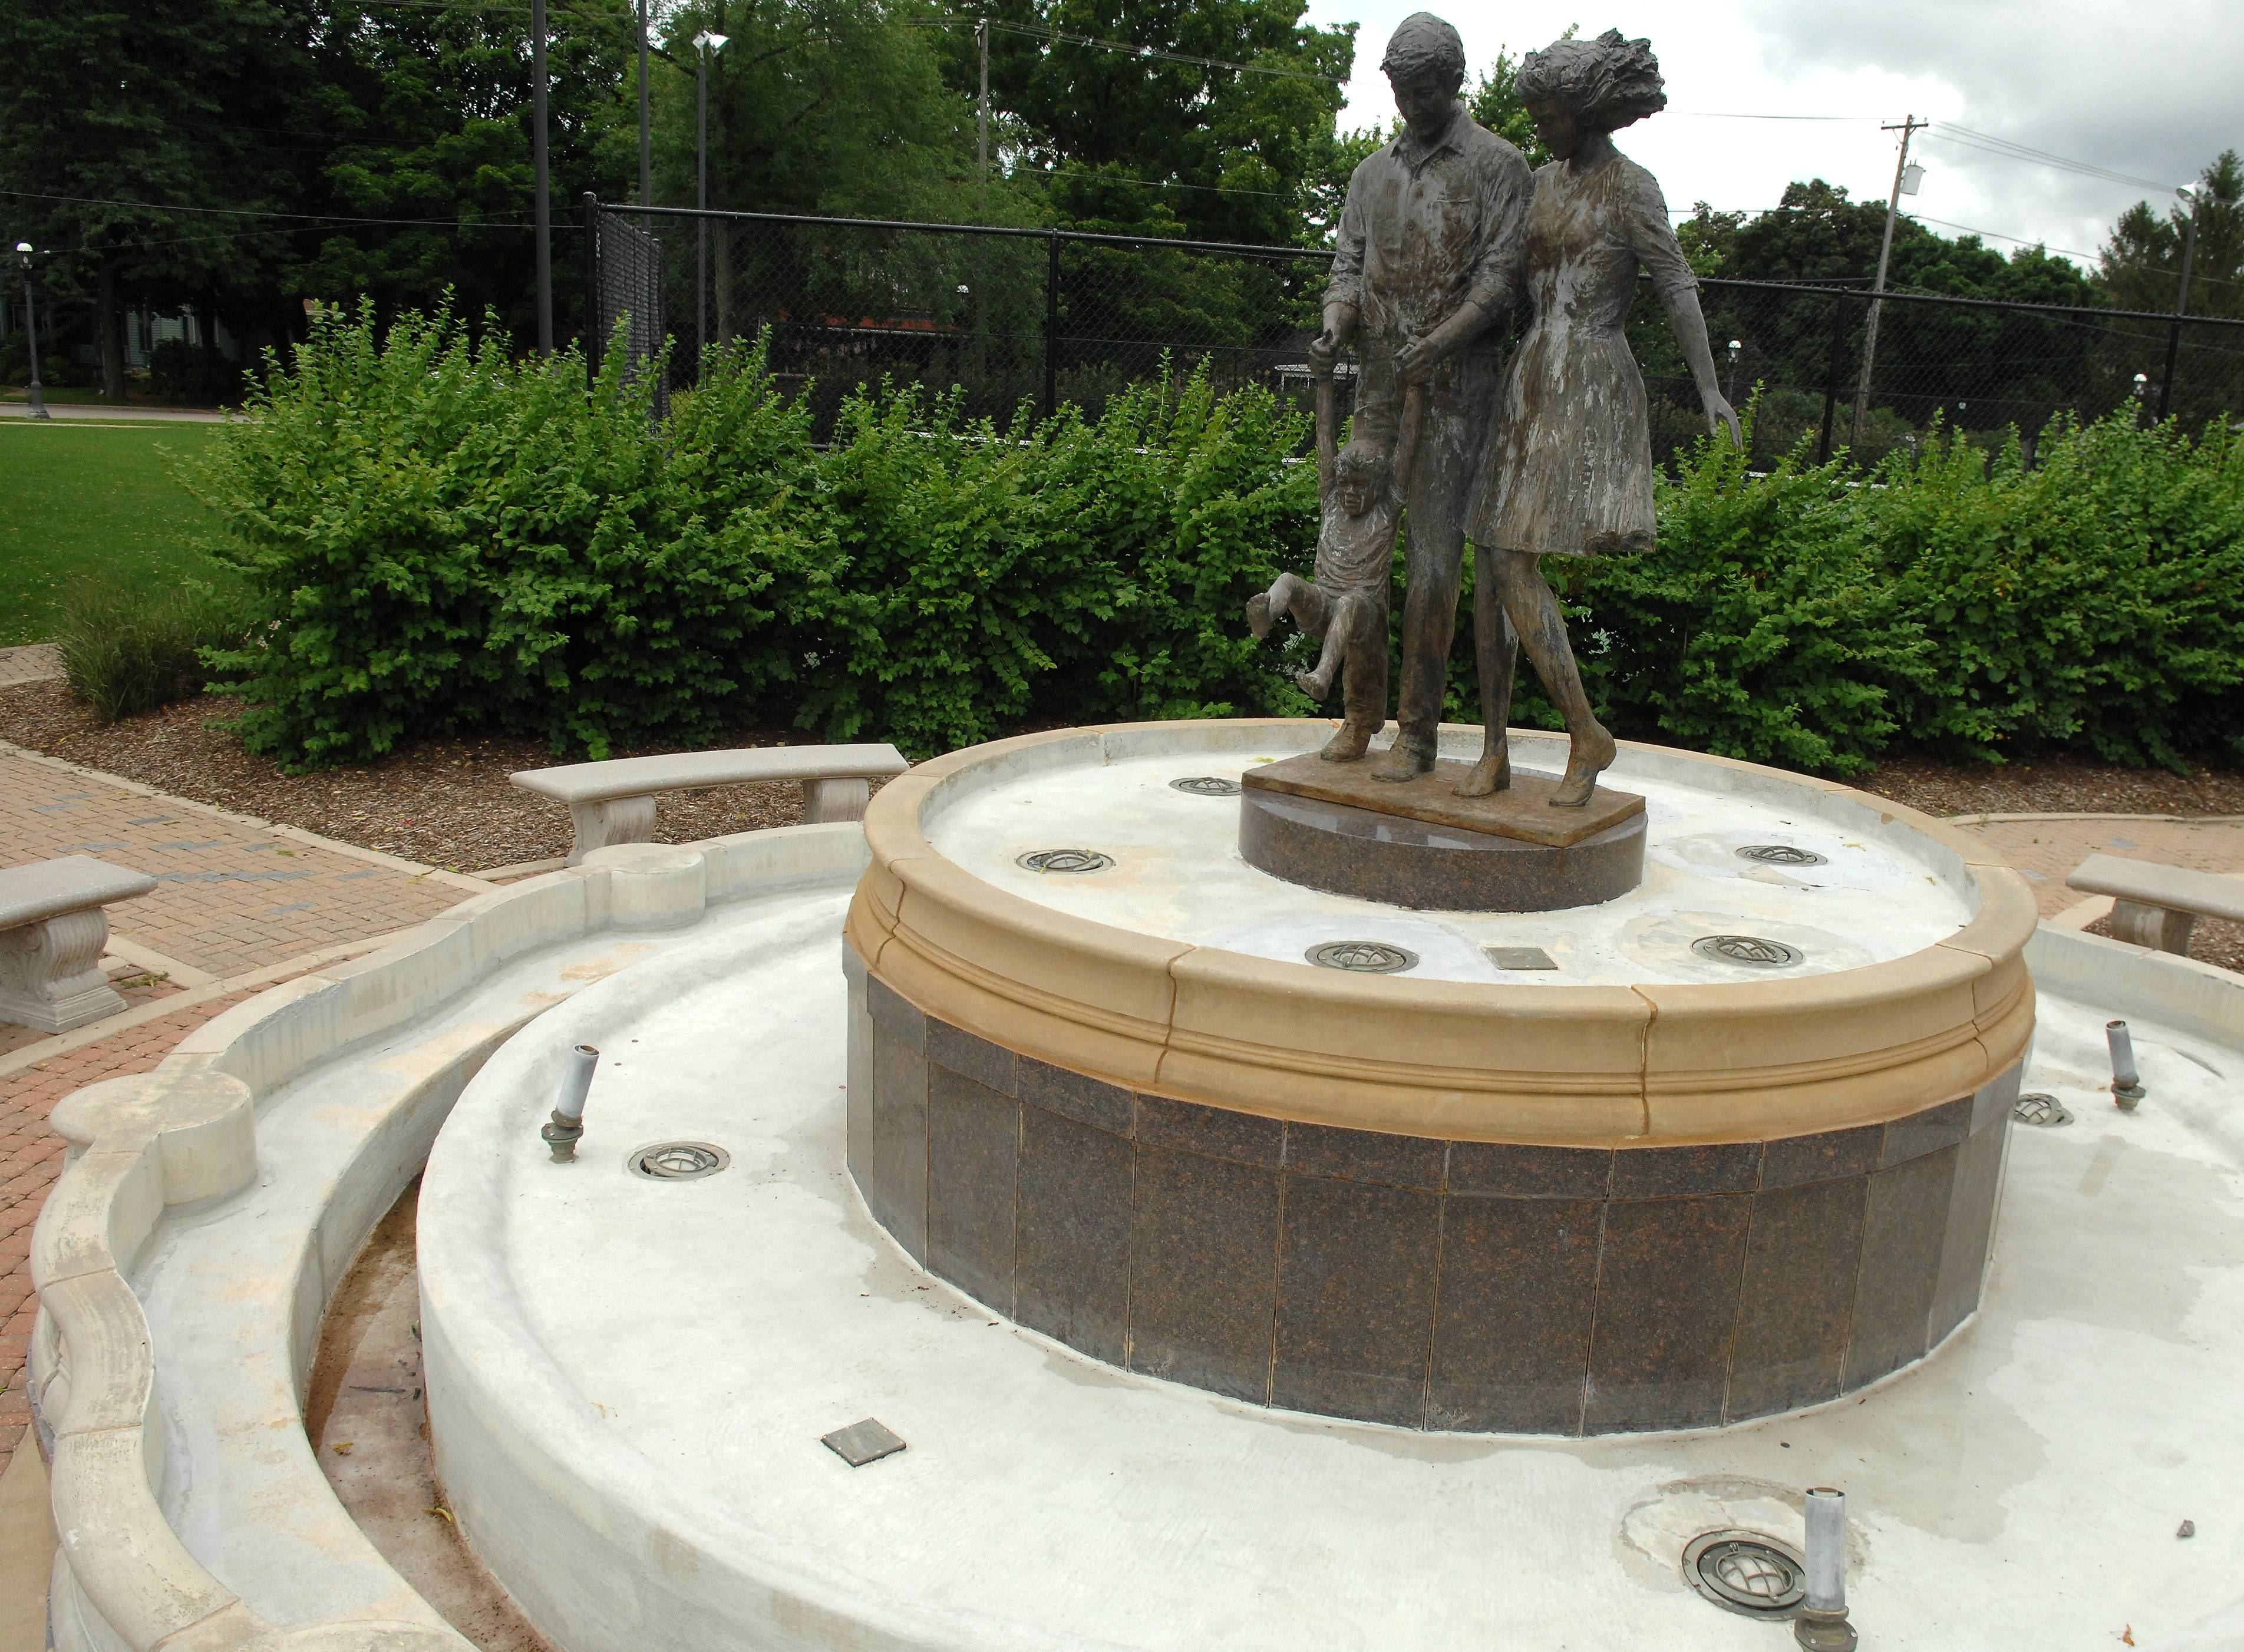 The fountain in Grafelman Park in West Dundee is slated for repair and should be in working order soon, according to village officials.